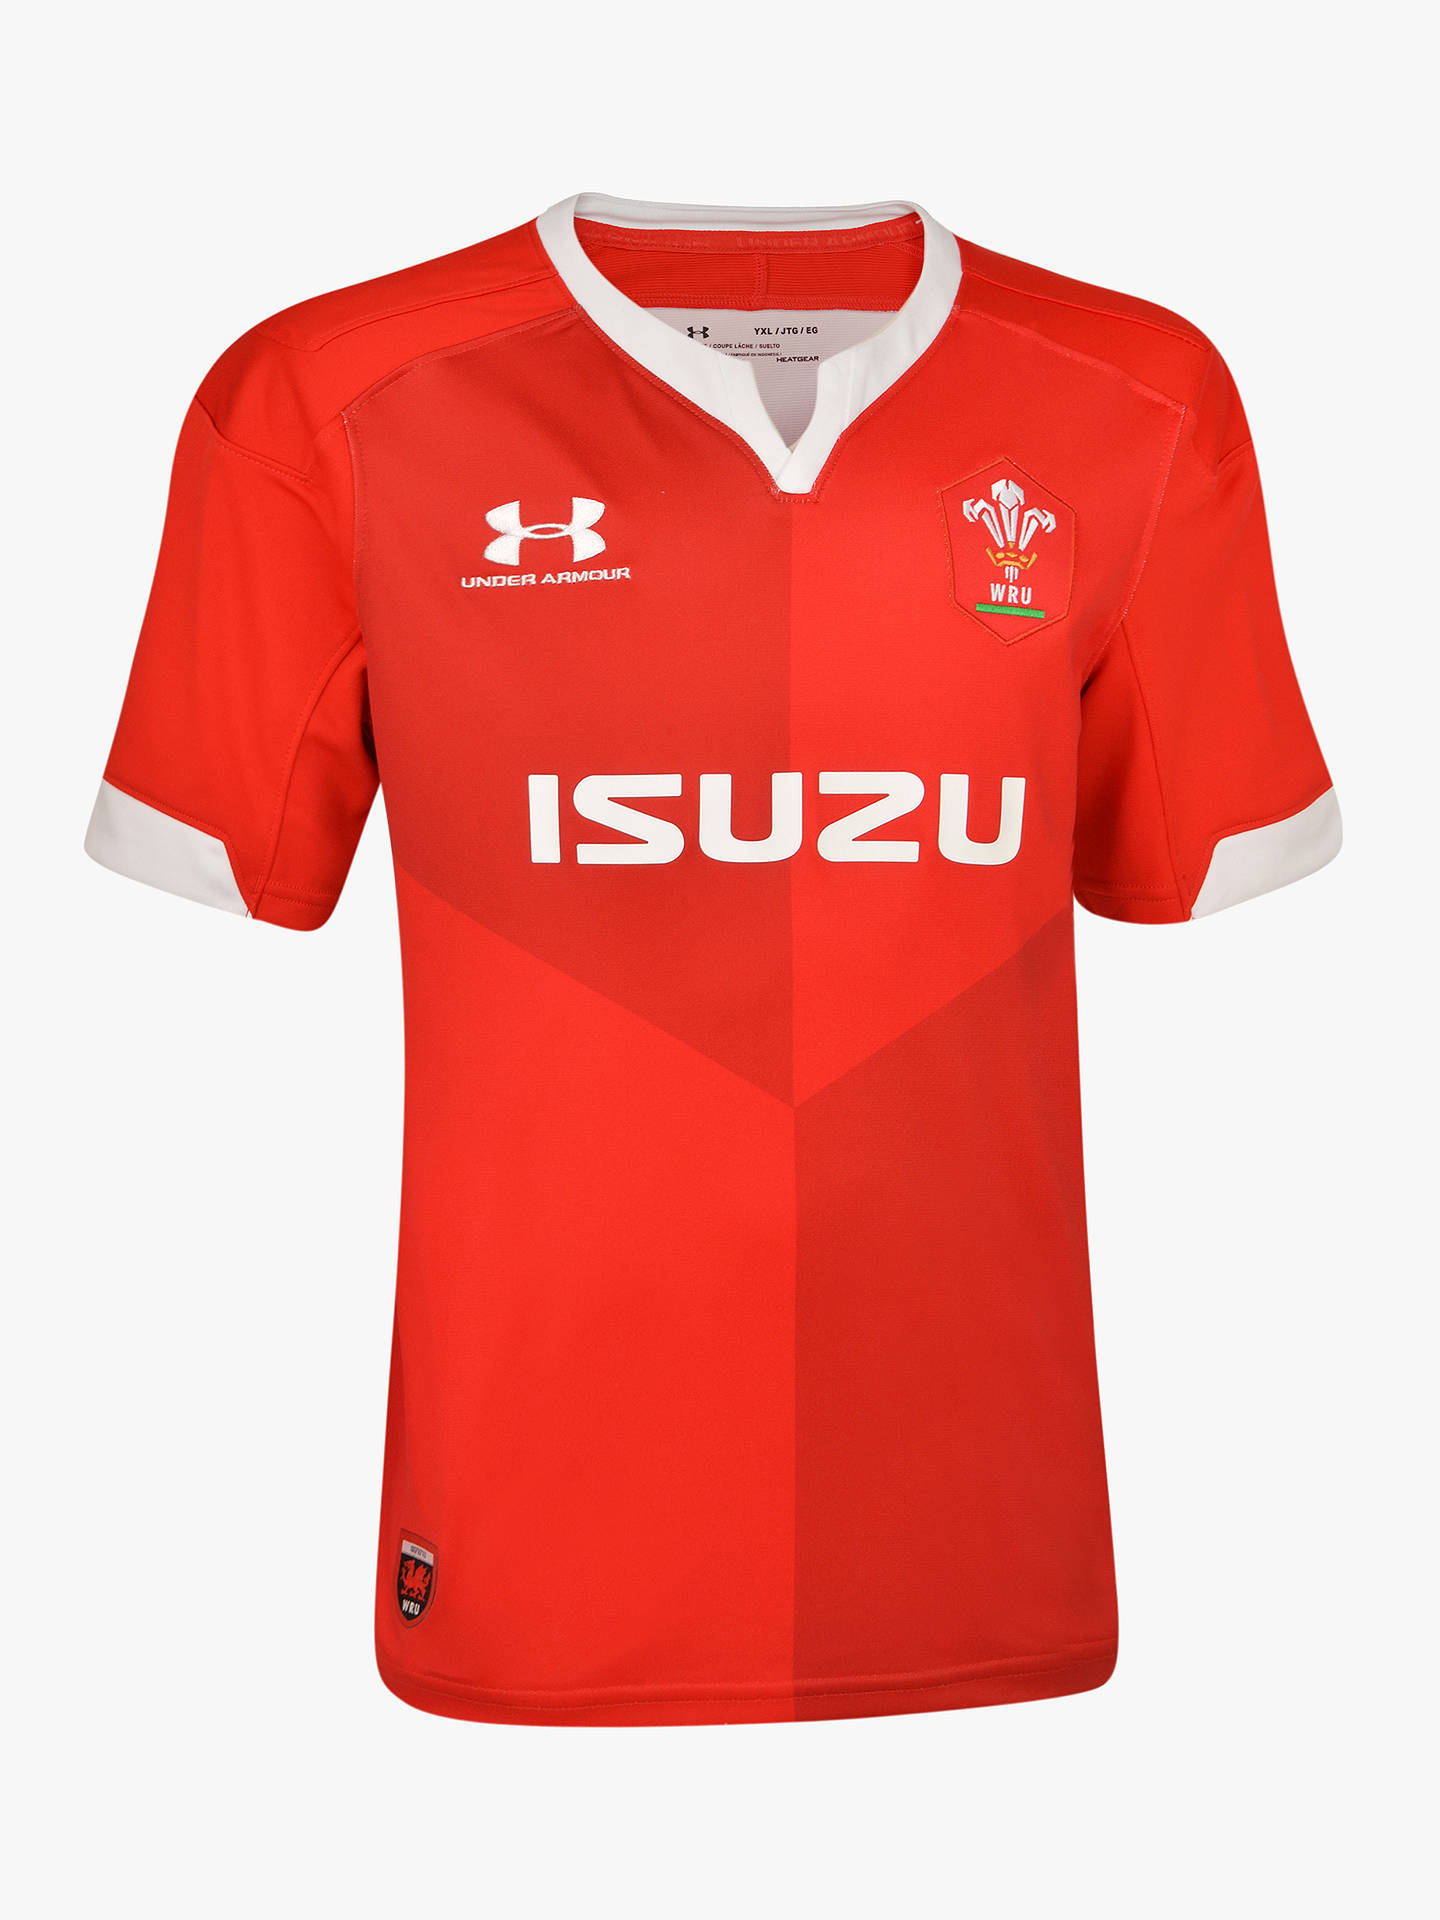 brand new 662d3 4e62f Under Armour Wales WRU 2019/20 Home Replica Rugby Shirt, Red